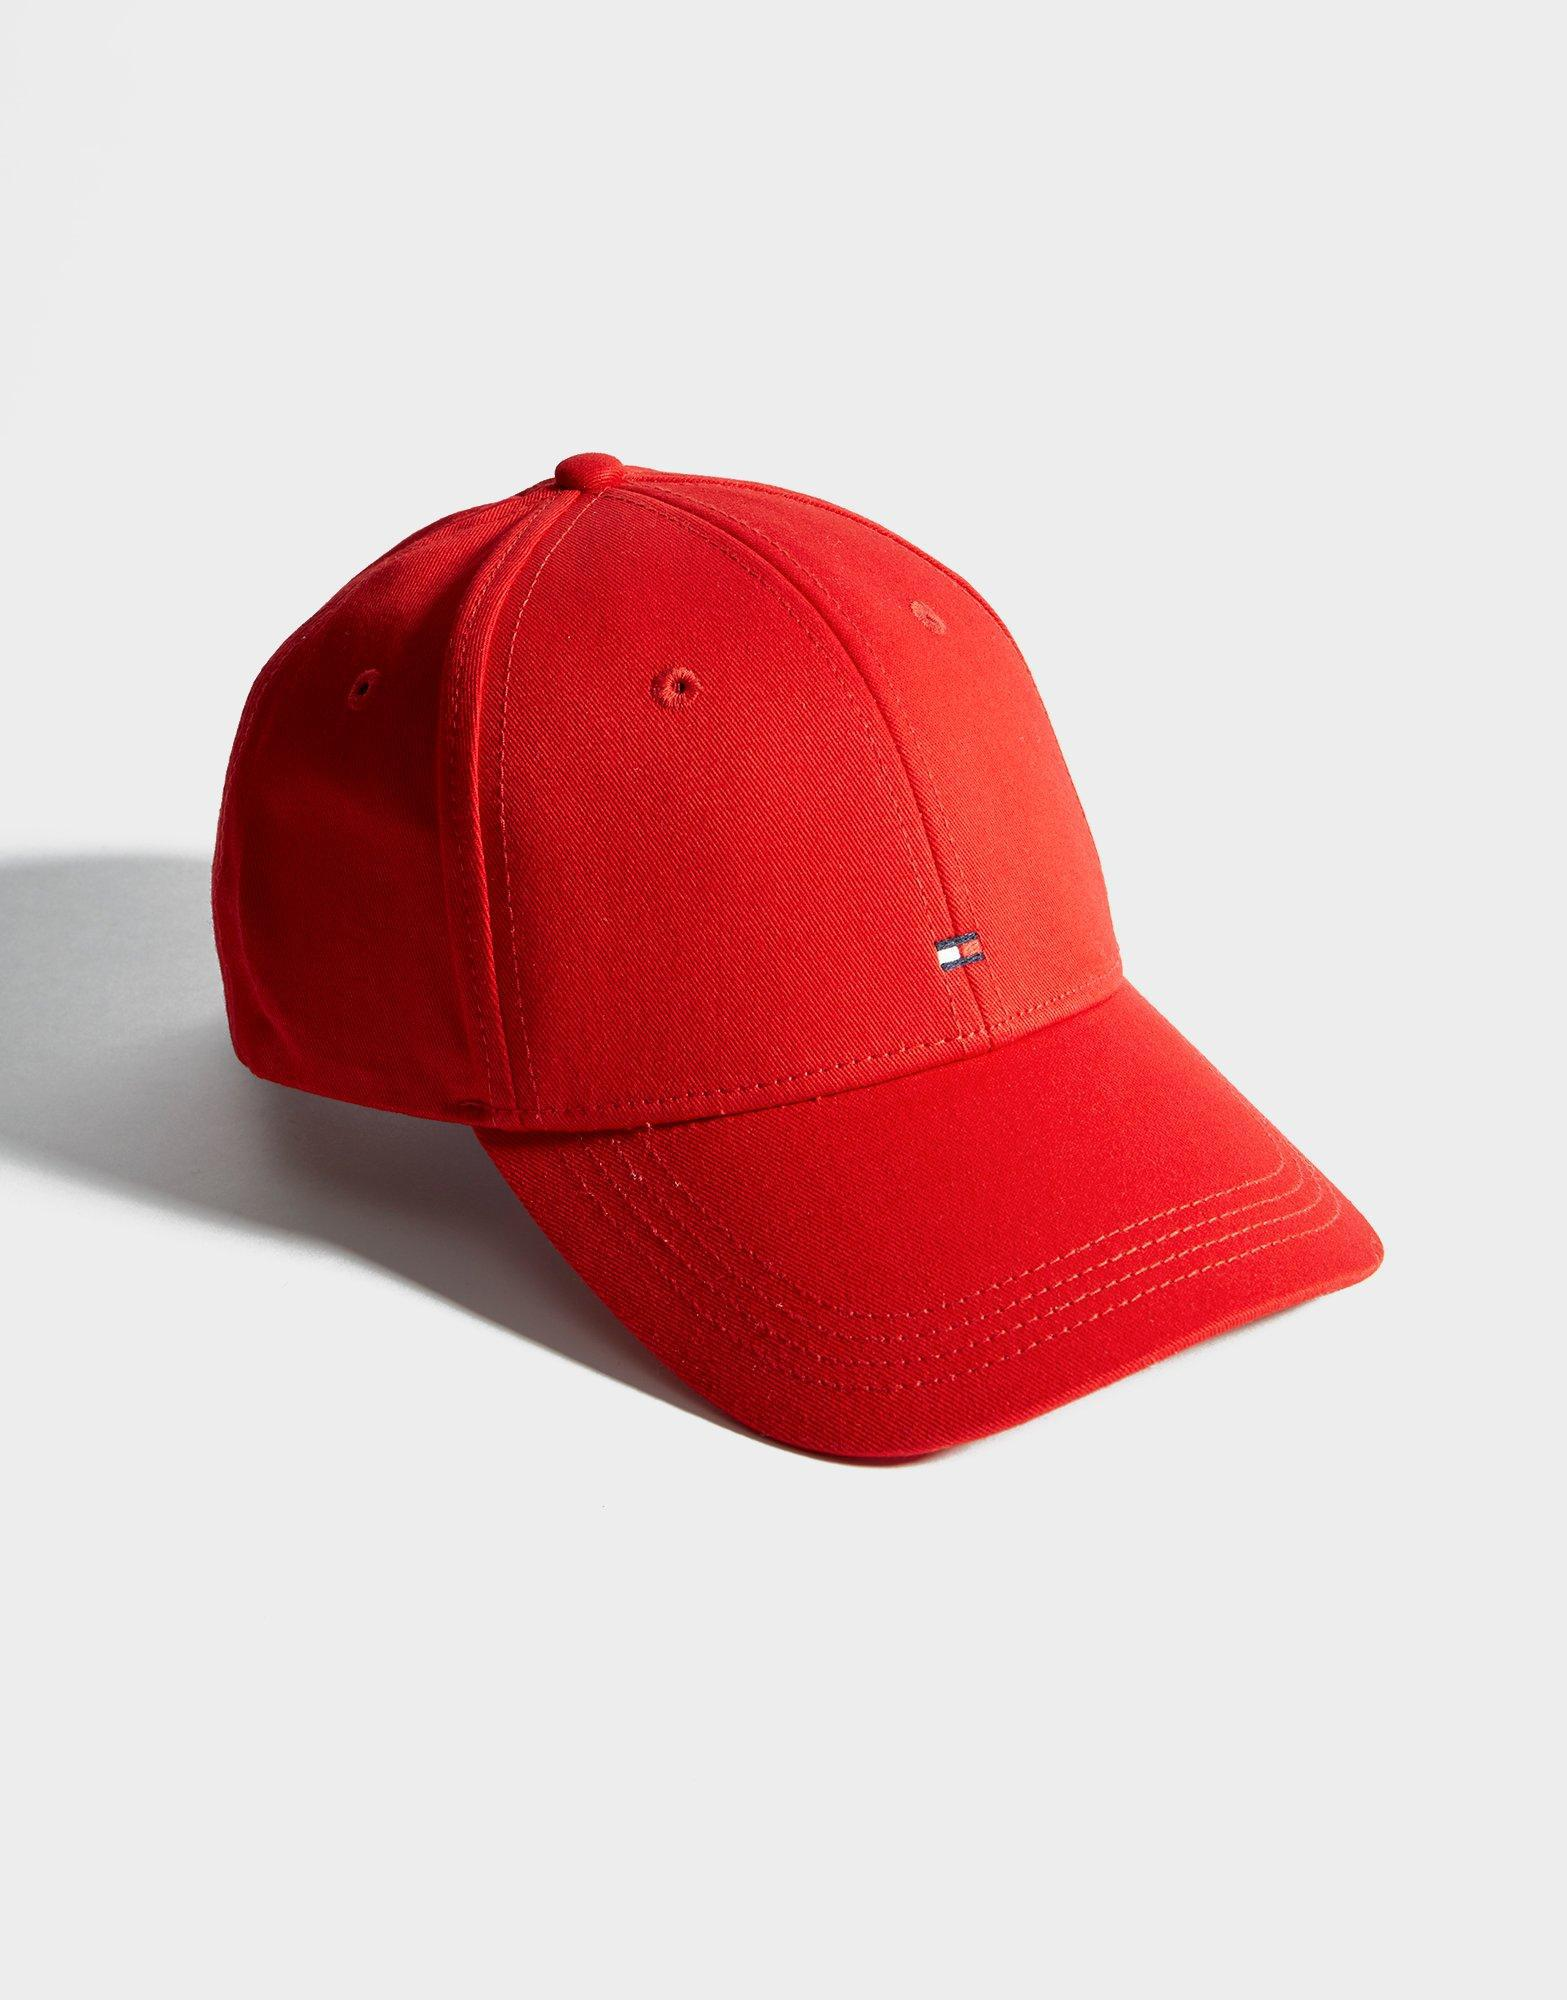 Tommy Hilfiger Classic Flag Cap in Red - Lyst 32268d7b21ed